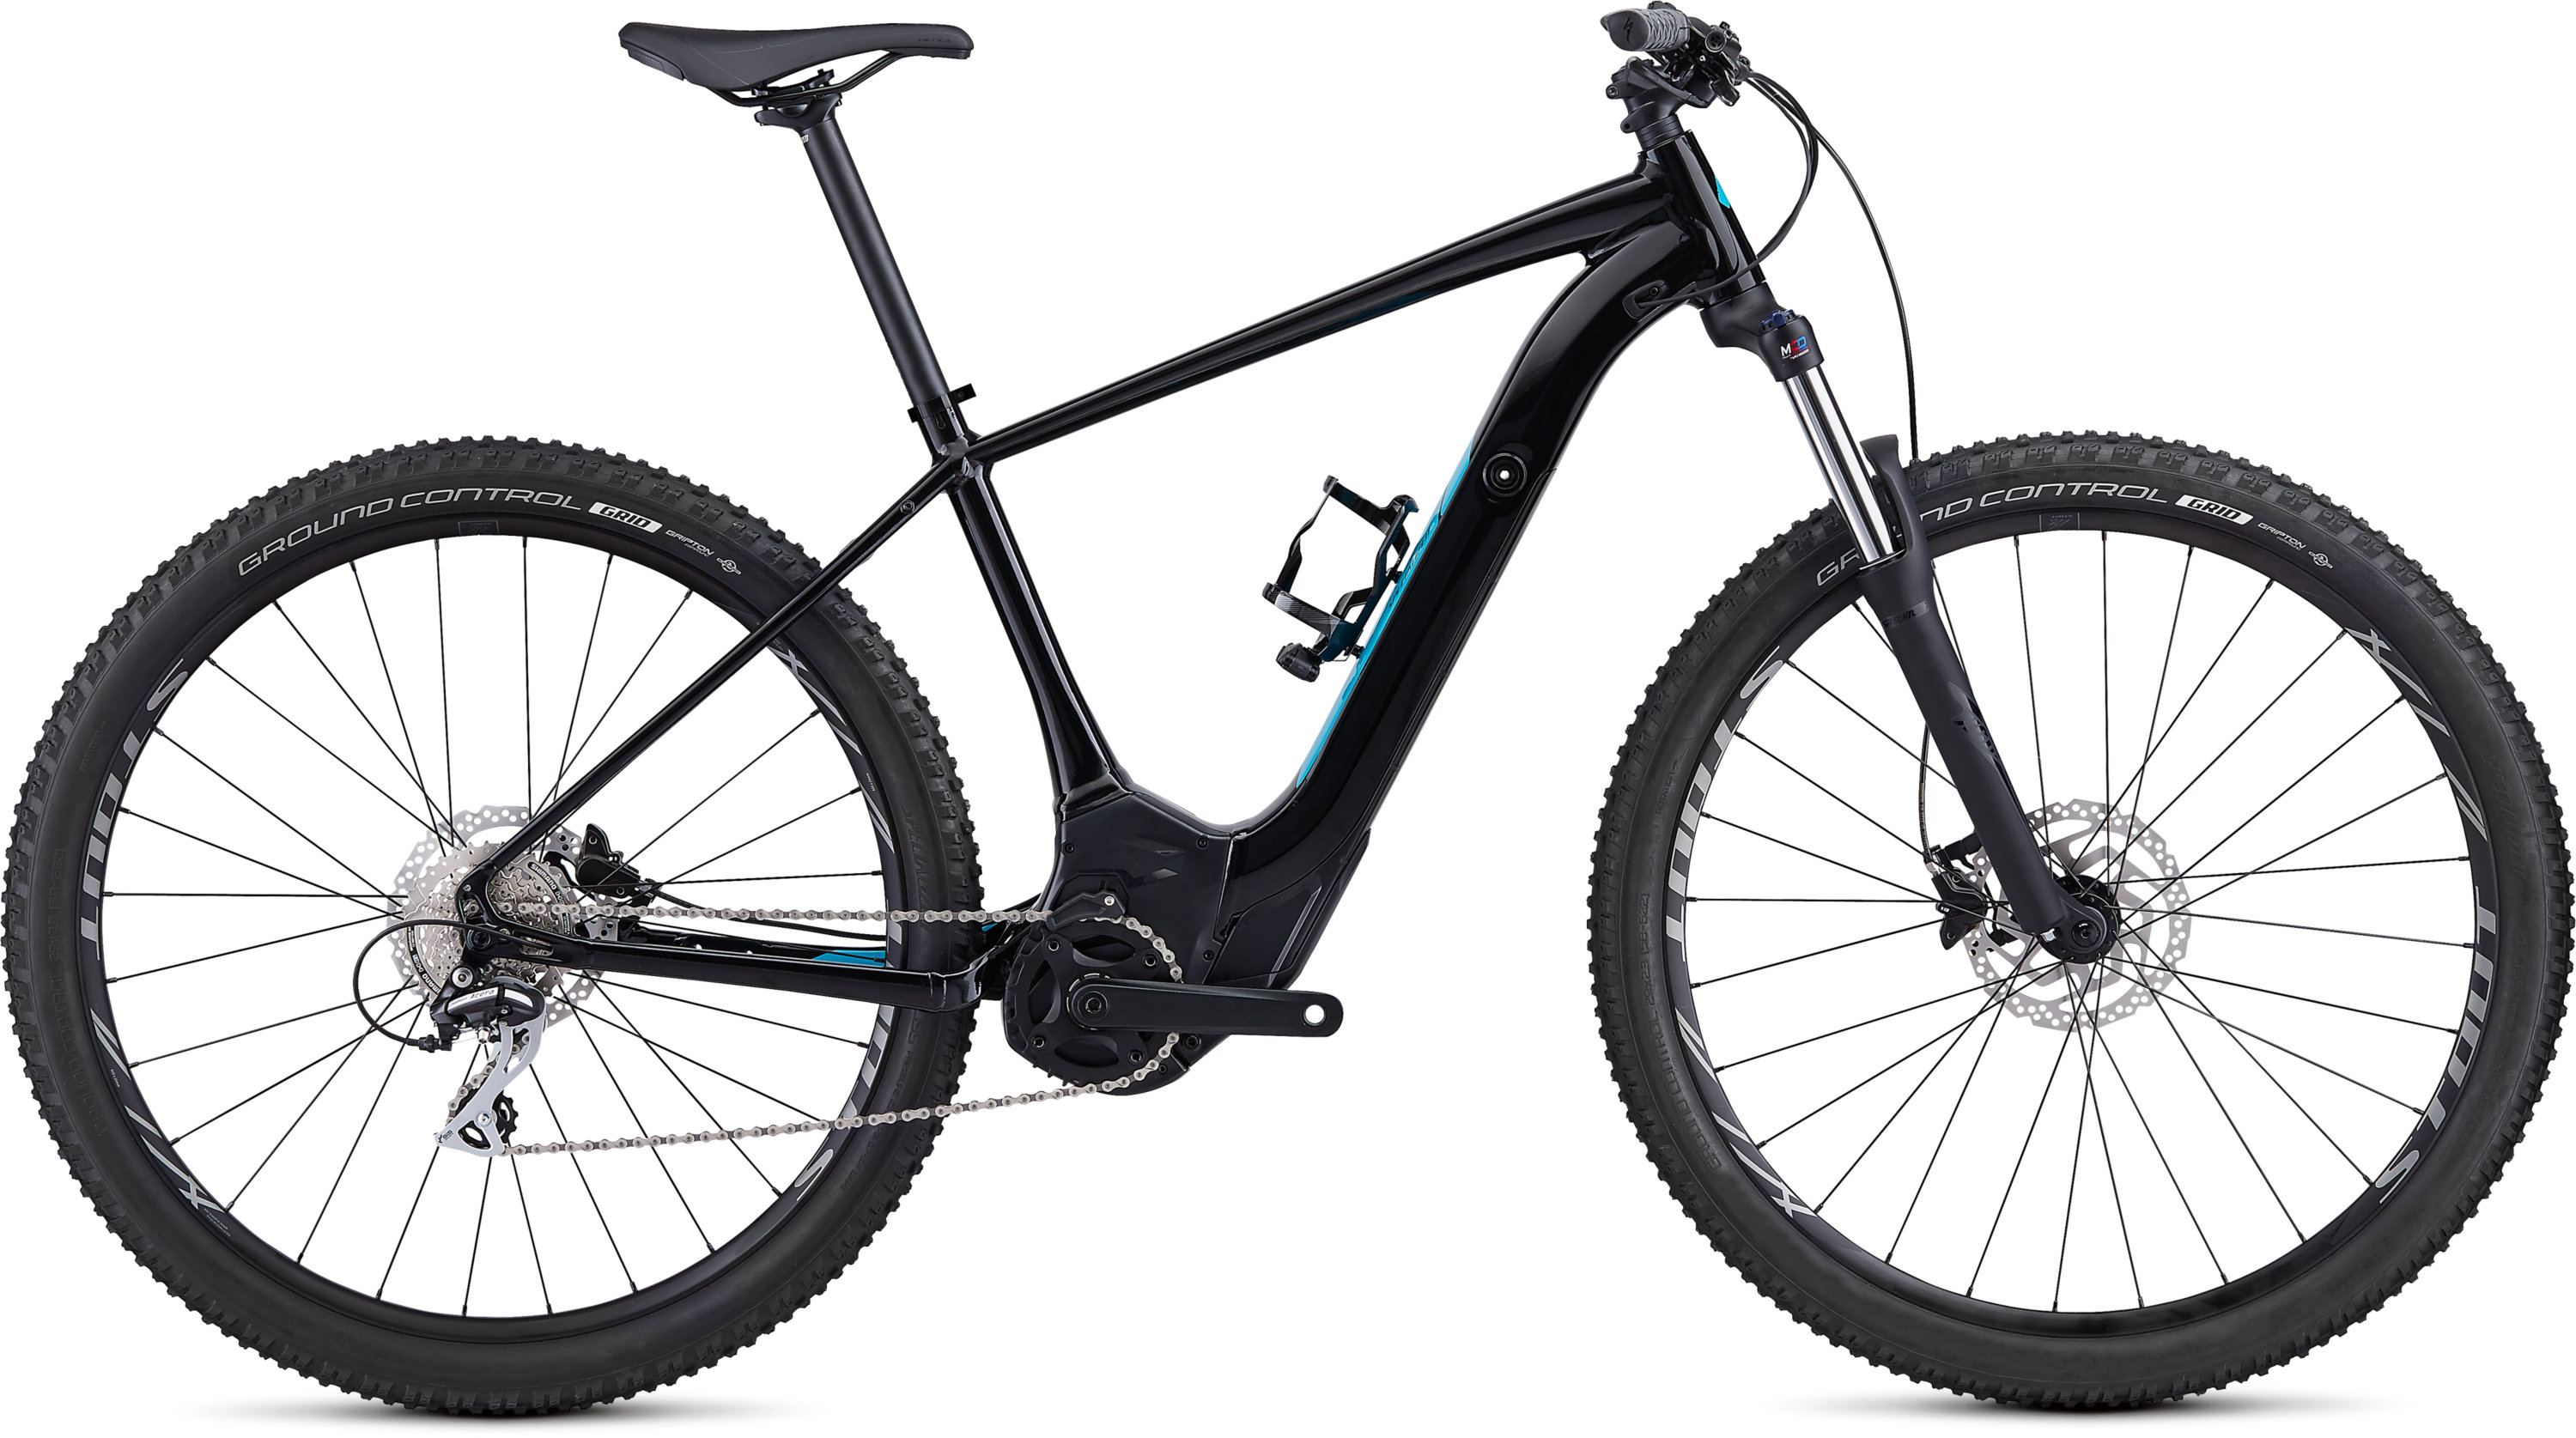 5eb1d523f39 2019 Specialized Men S Turbo Levo Hardtail 29 Specialized Concept